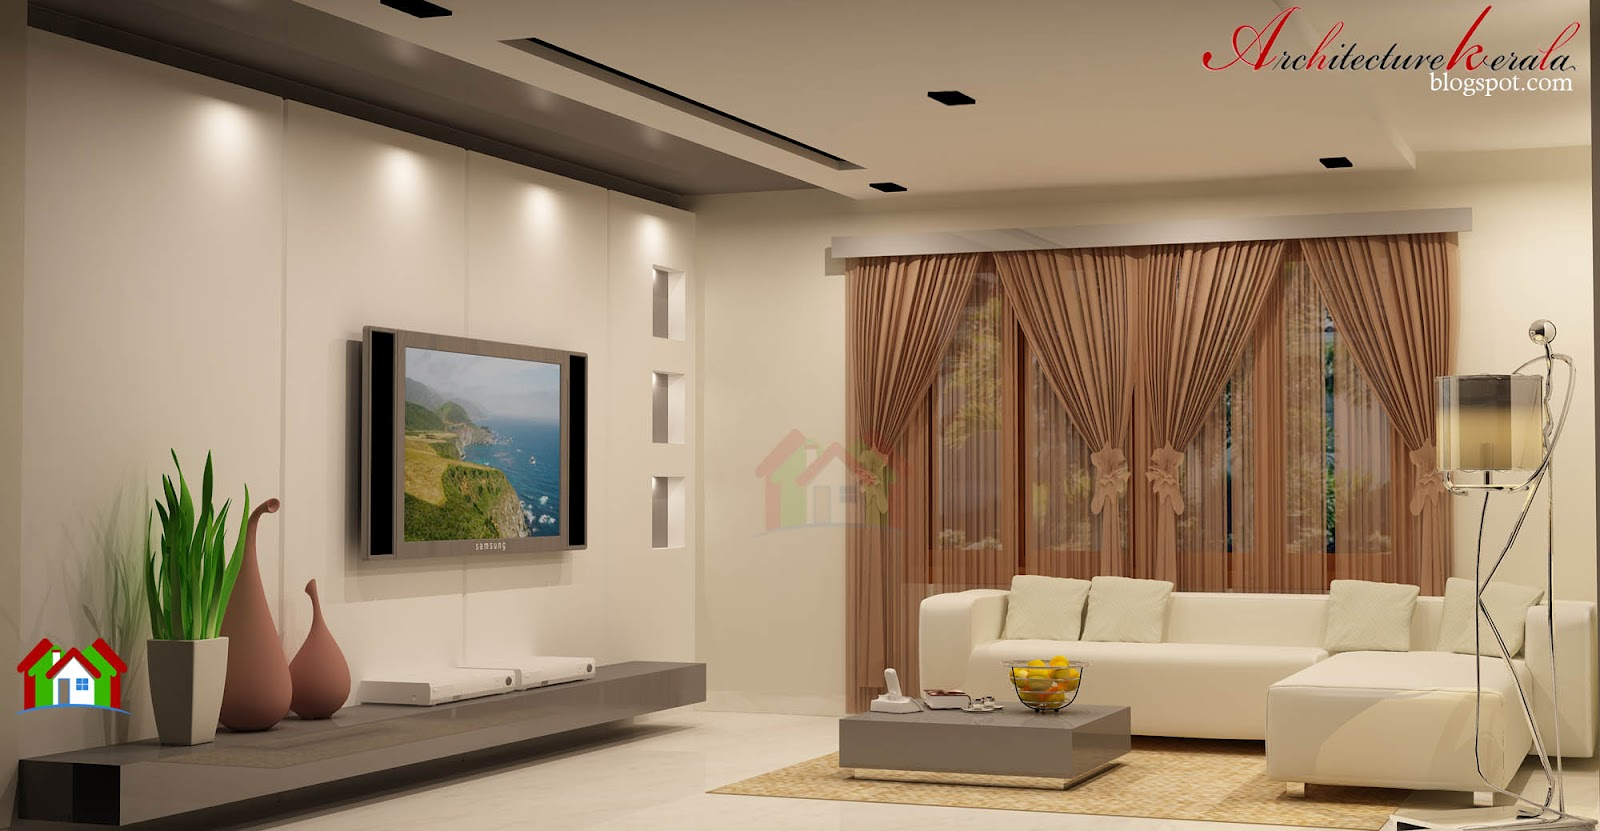 Architecture kerala interior design of living room for Living room interior in kerala